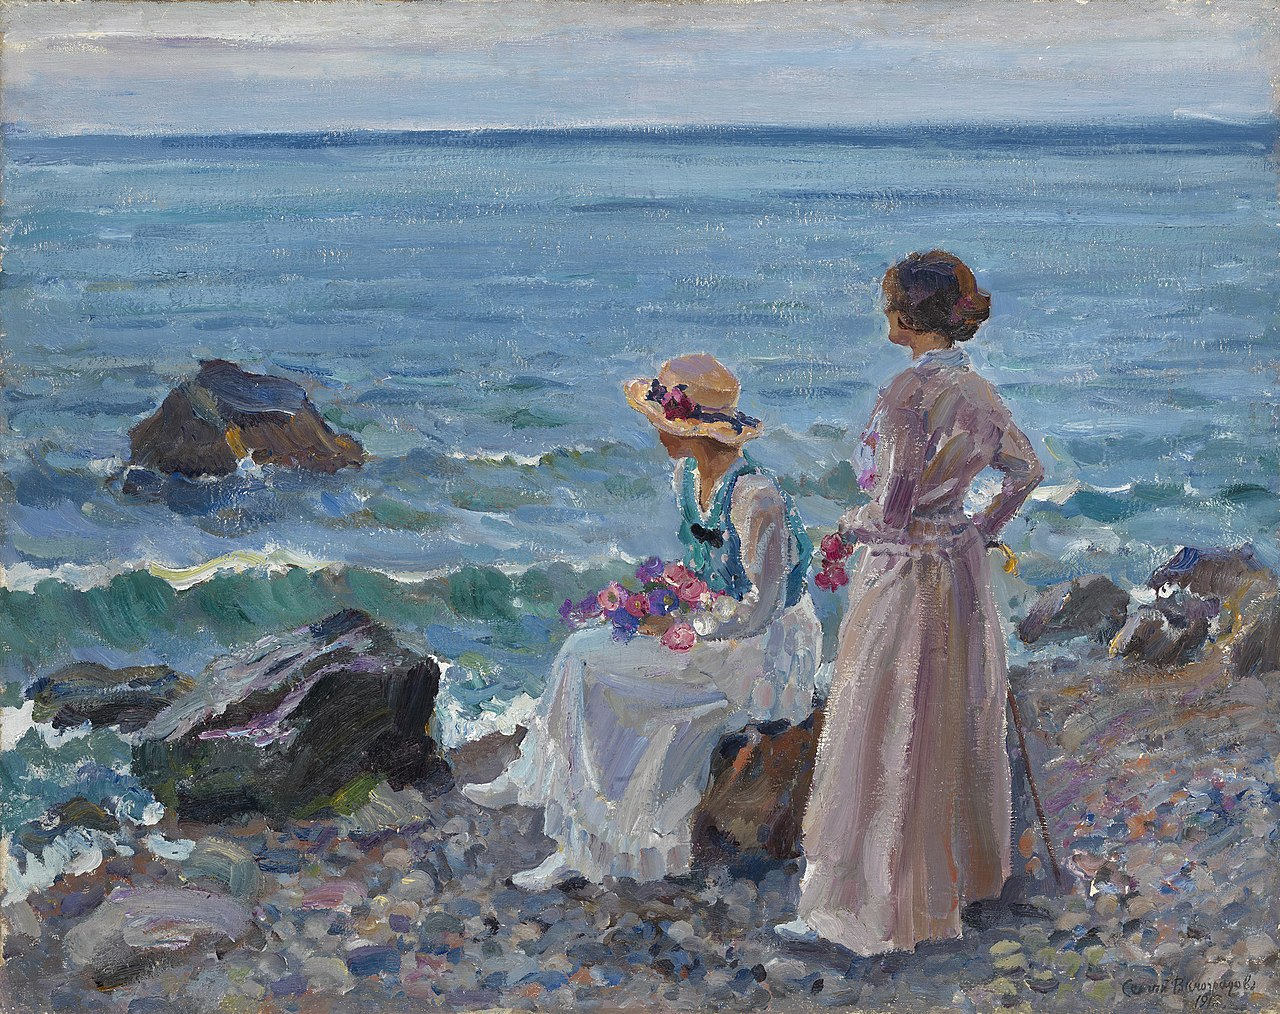 Sergey_Vinogradov_-_Women_by_the_Sea.jpg